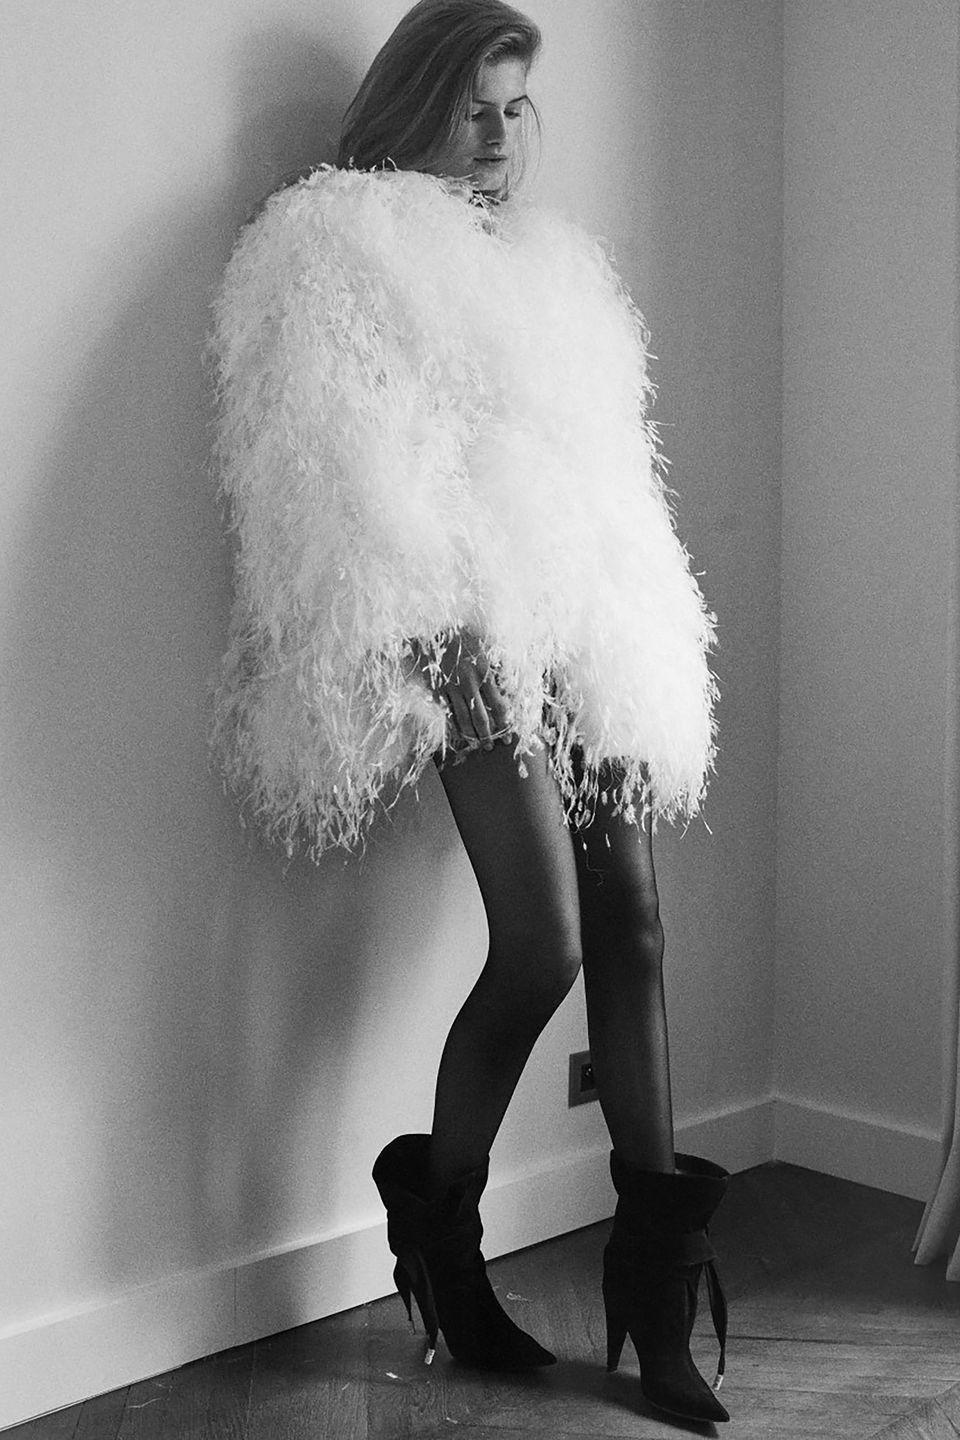 <p>What if the winter bride wanted to stay out all night, dancing until the sun comes up? Of course, the aforementioned king of the after party, Alexandre Vauthier, has you covered for this winter's intimate weddings, too. </p><p>Feathers are a second-dress staple in wedding dressing, but leave it to Vauthier to take plumes and turn the volume way up. And he doesn't want brides to forget the edge, either—hence the black hosiery and easy-to-sport ankle boots. This is Couture with function; you won't need a coat if you opt for an party look this cozy. </p><p>Vauthier gets us; after months of distancing and sheltering in place, we (and brides the world over) just want to party, but we might not be able to do it until December or January. And with the weather in mind, what else would suit a winter dance party better than a mini dress of all-over plumes?! Nothing, it seems. </p>